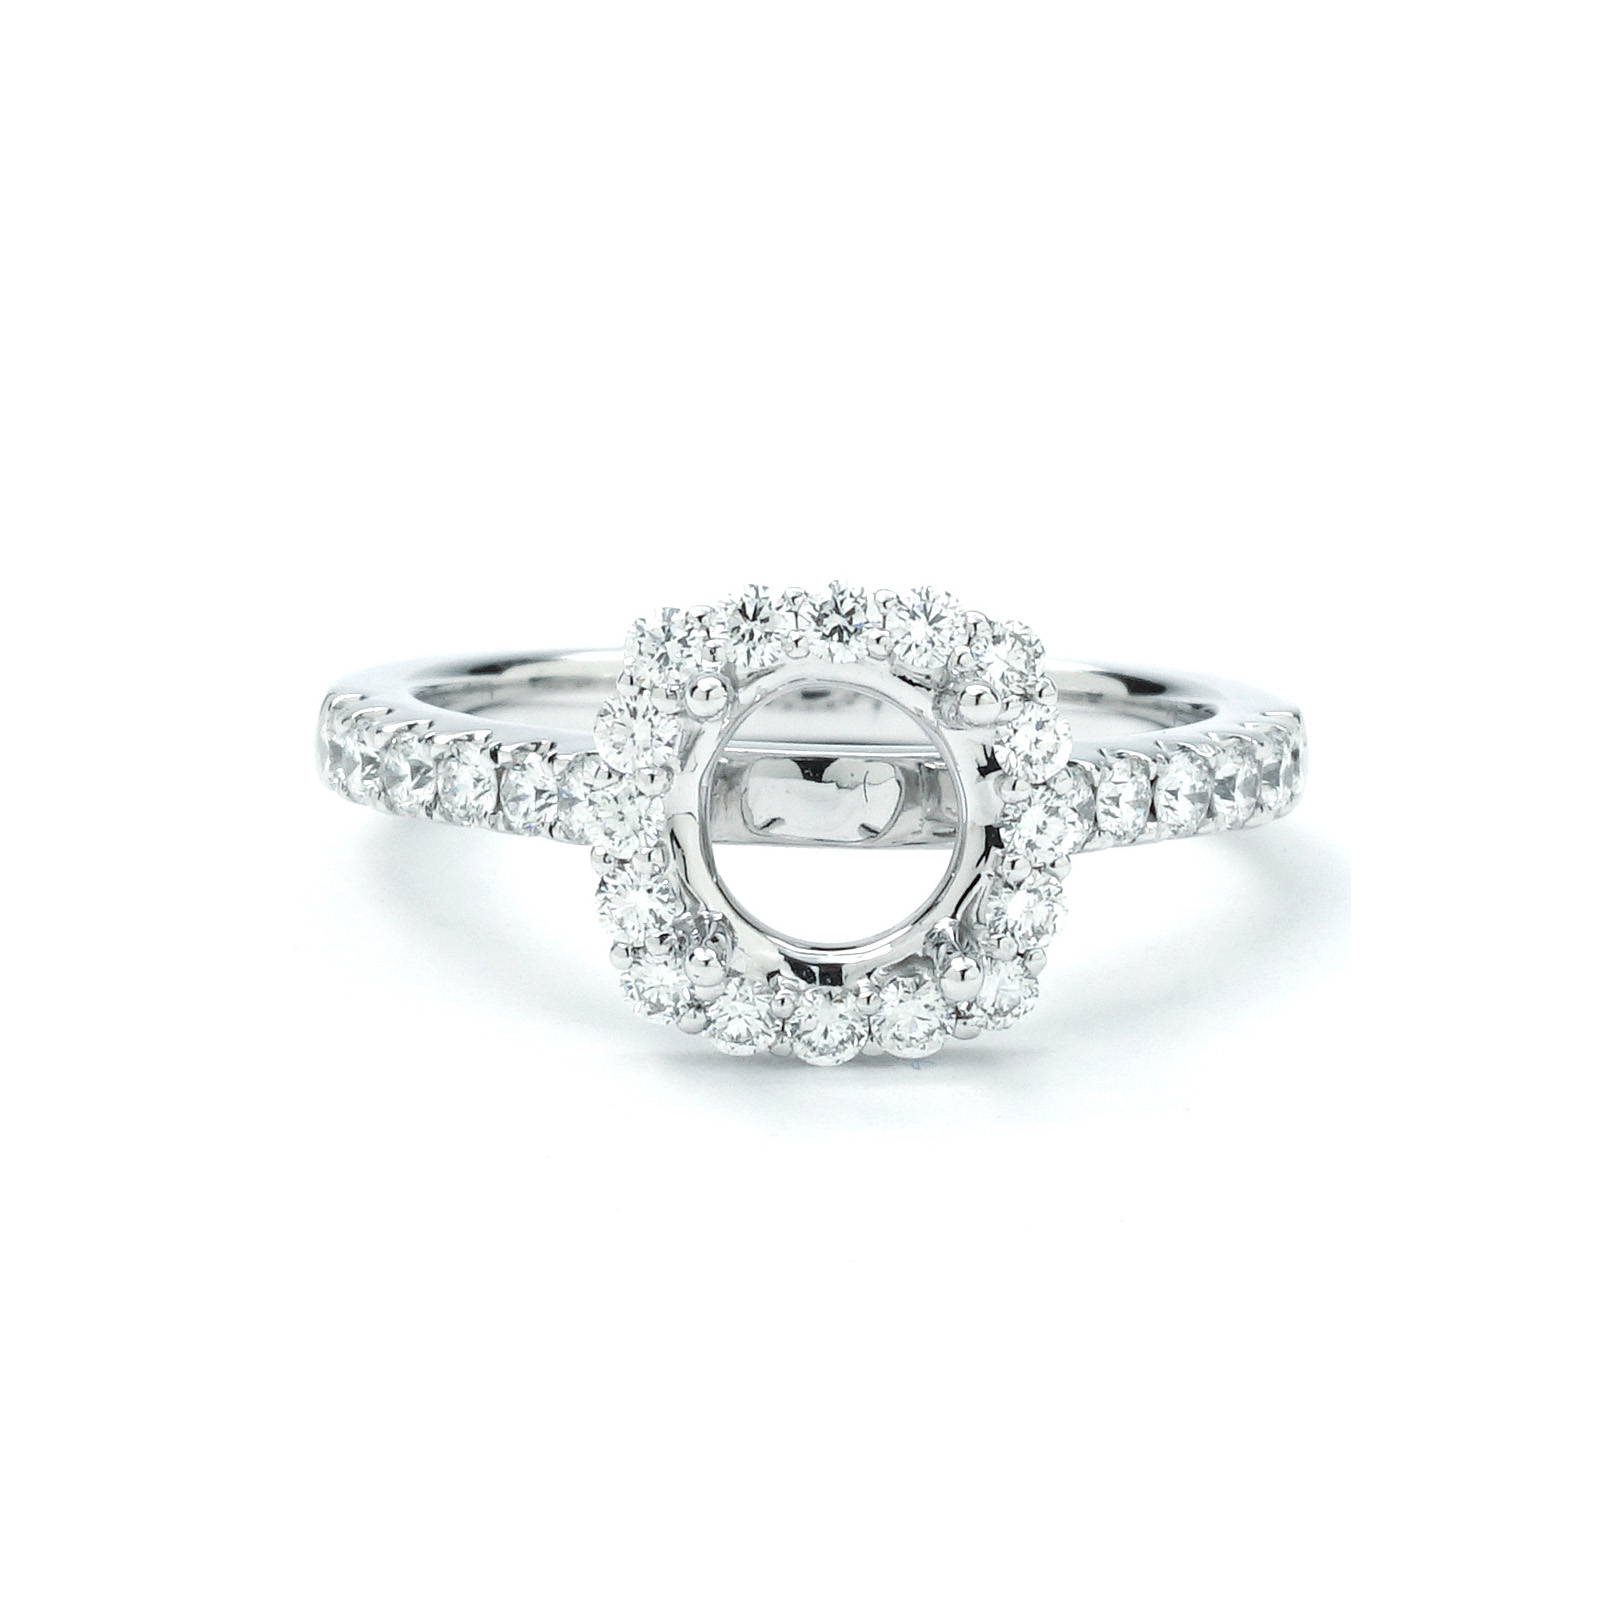 Unique Shaped Scalloped Shared Prong Halo Setting S